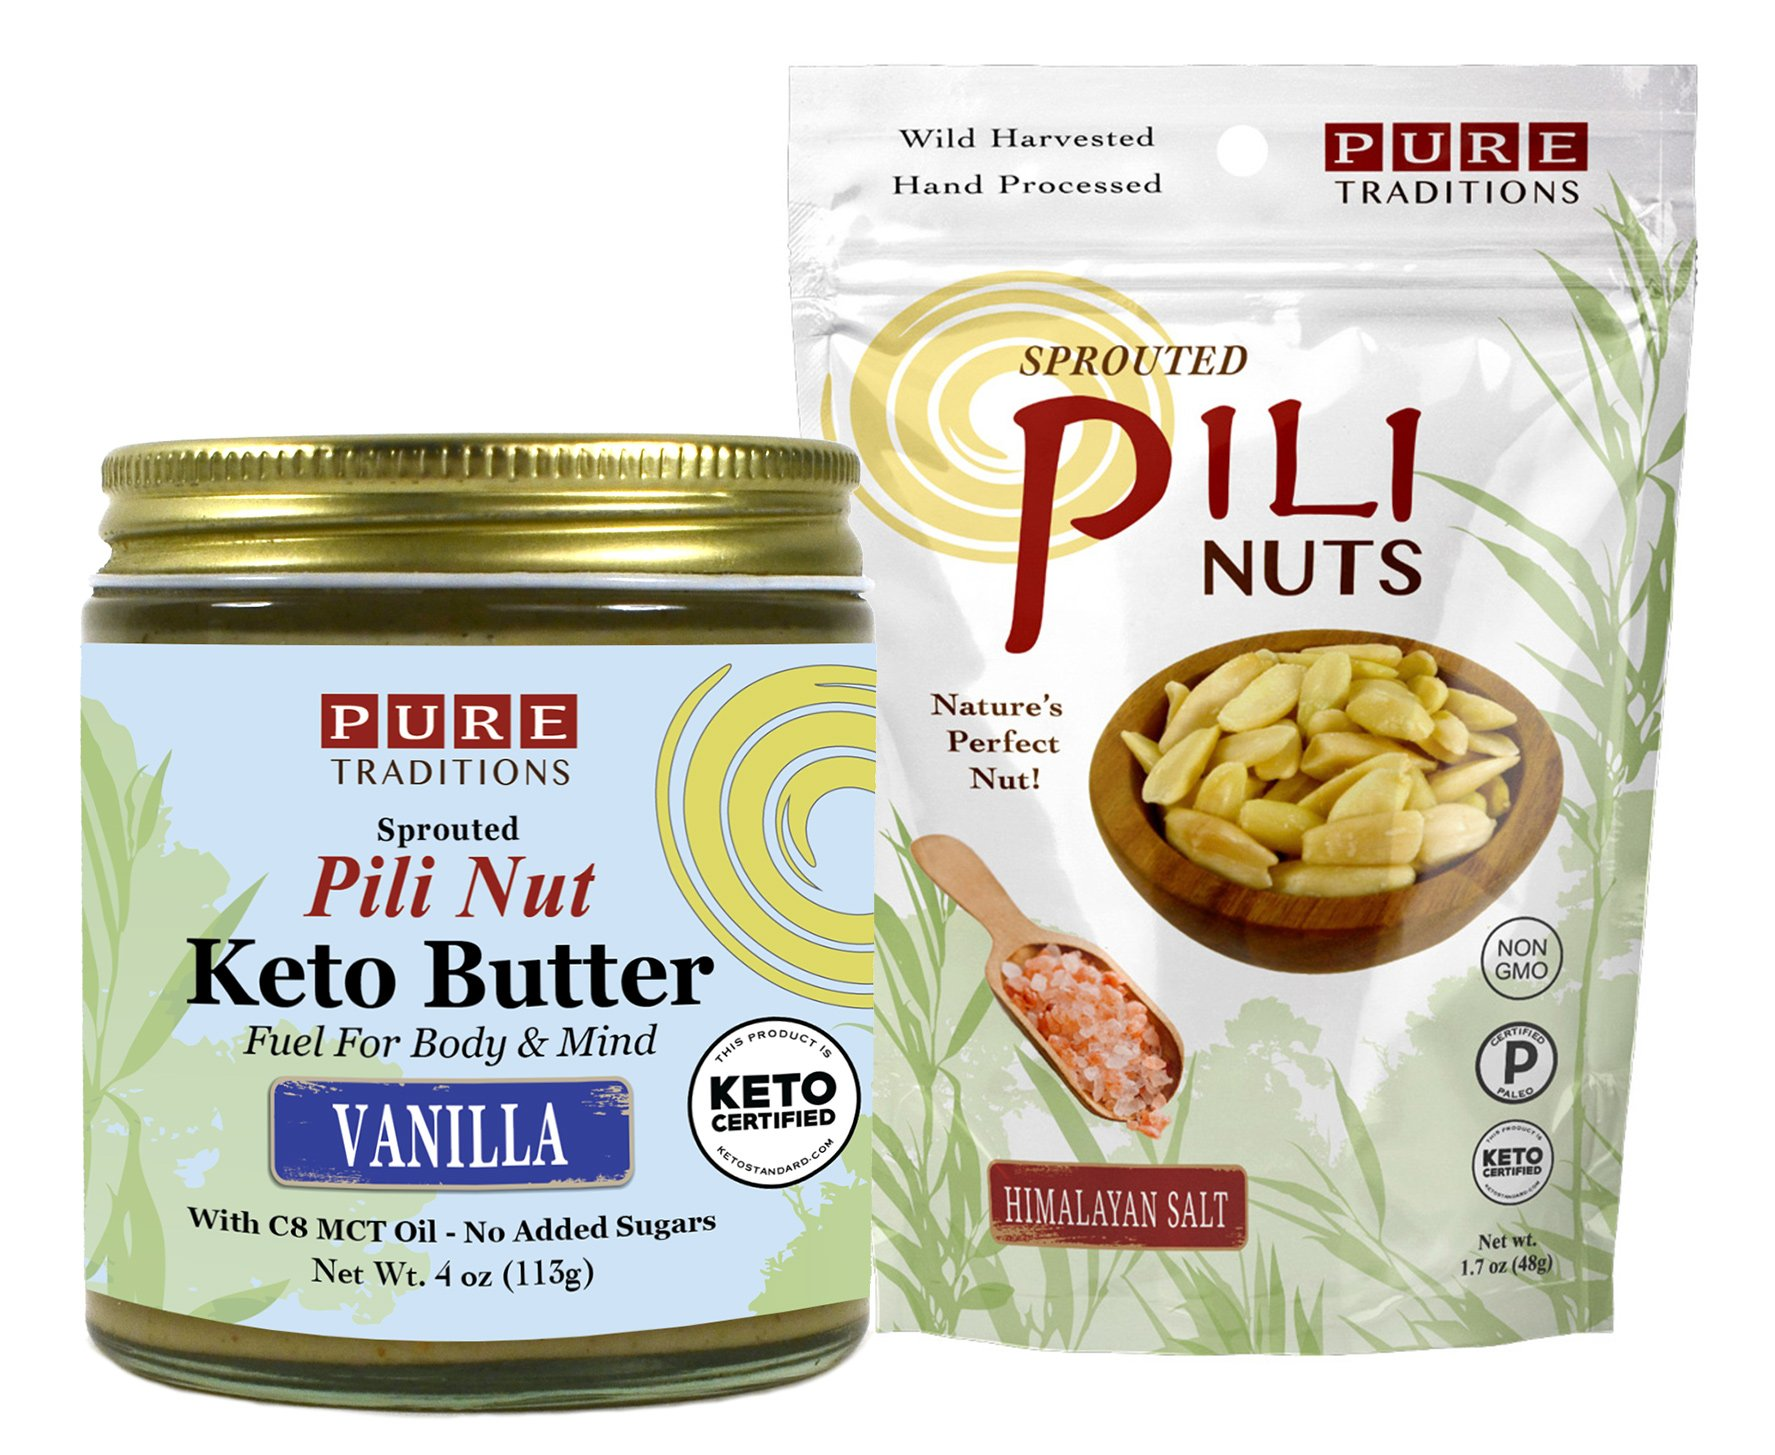 Pili Nut Keto Butter, Vanilla (4 oz) plus Sprouted Pili Nuts, Himalayan Salt (1.7 oz)